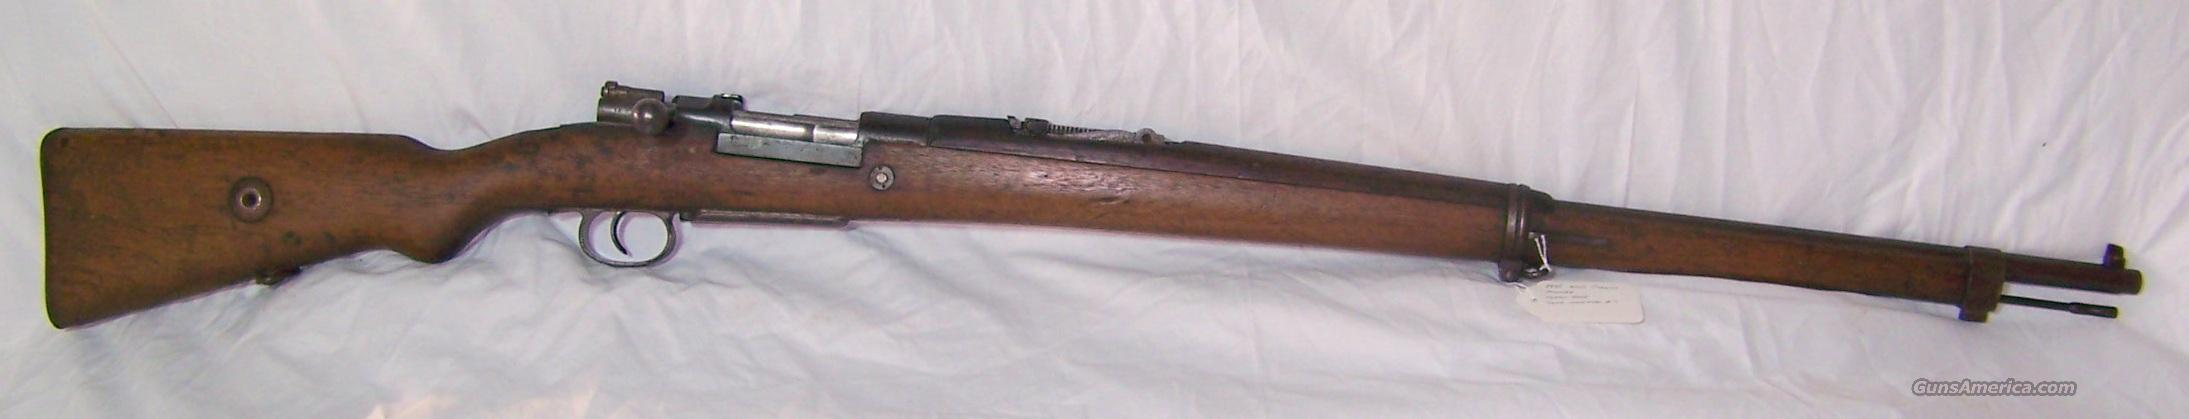 1935 Turkish Mauser 8mm  Guns > Rifles > Mauser Rifles > Turkish